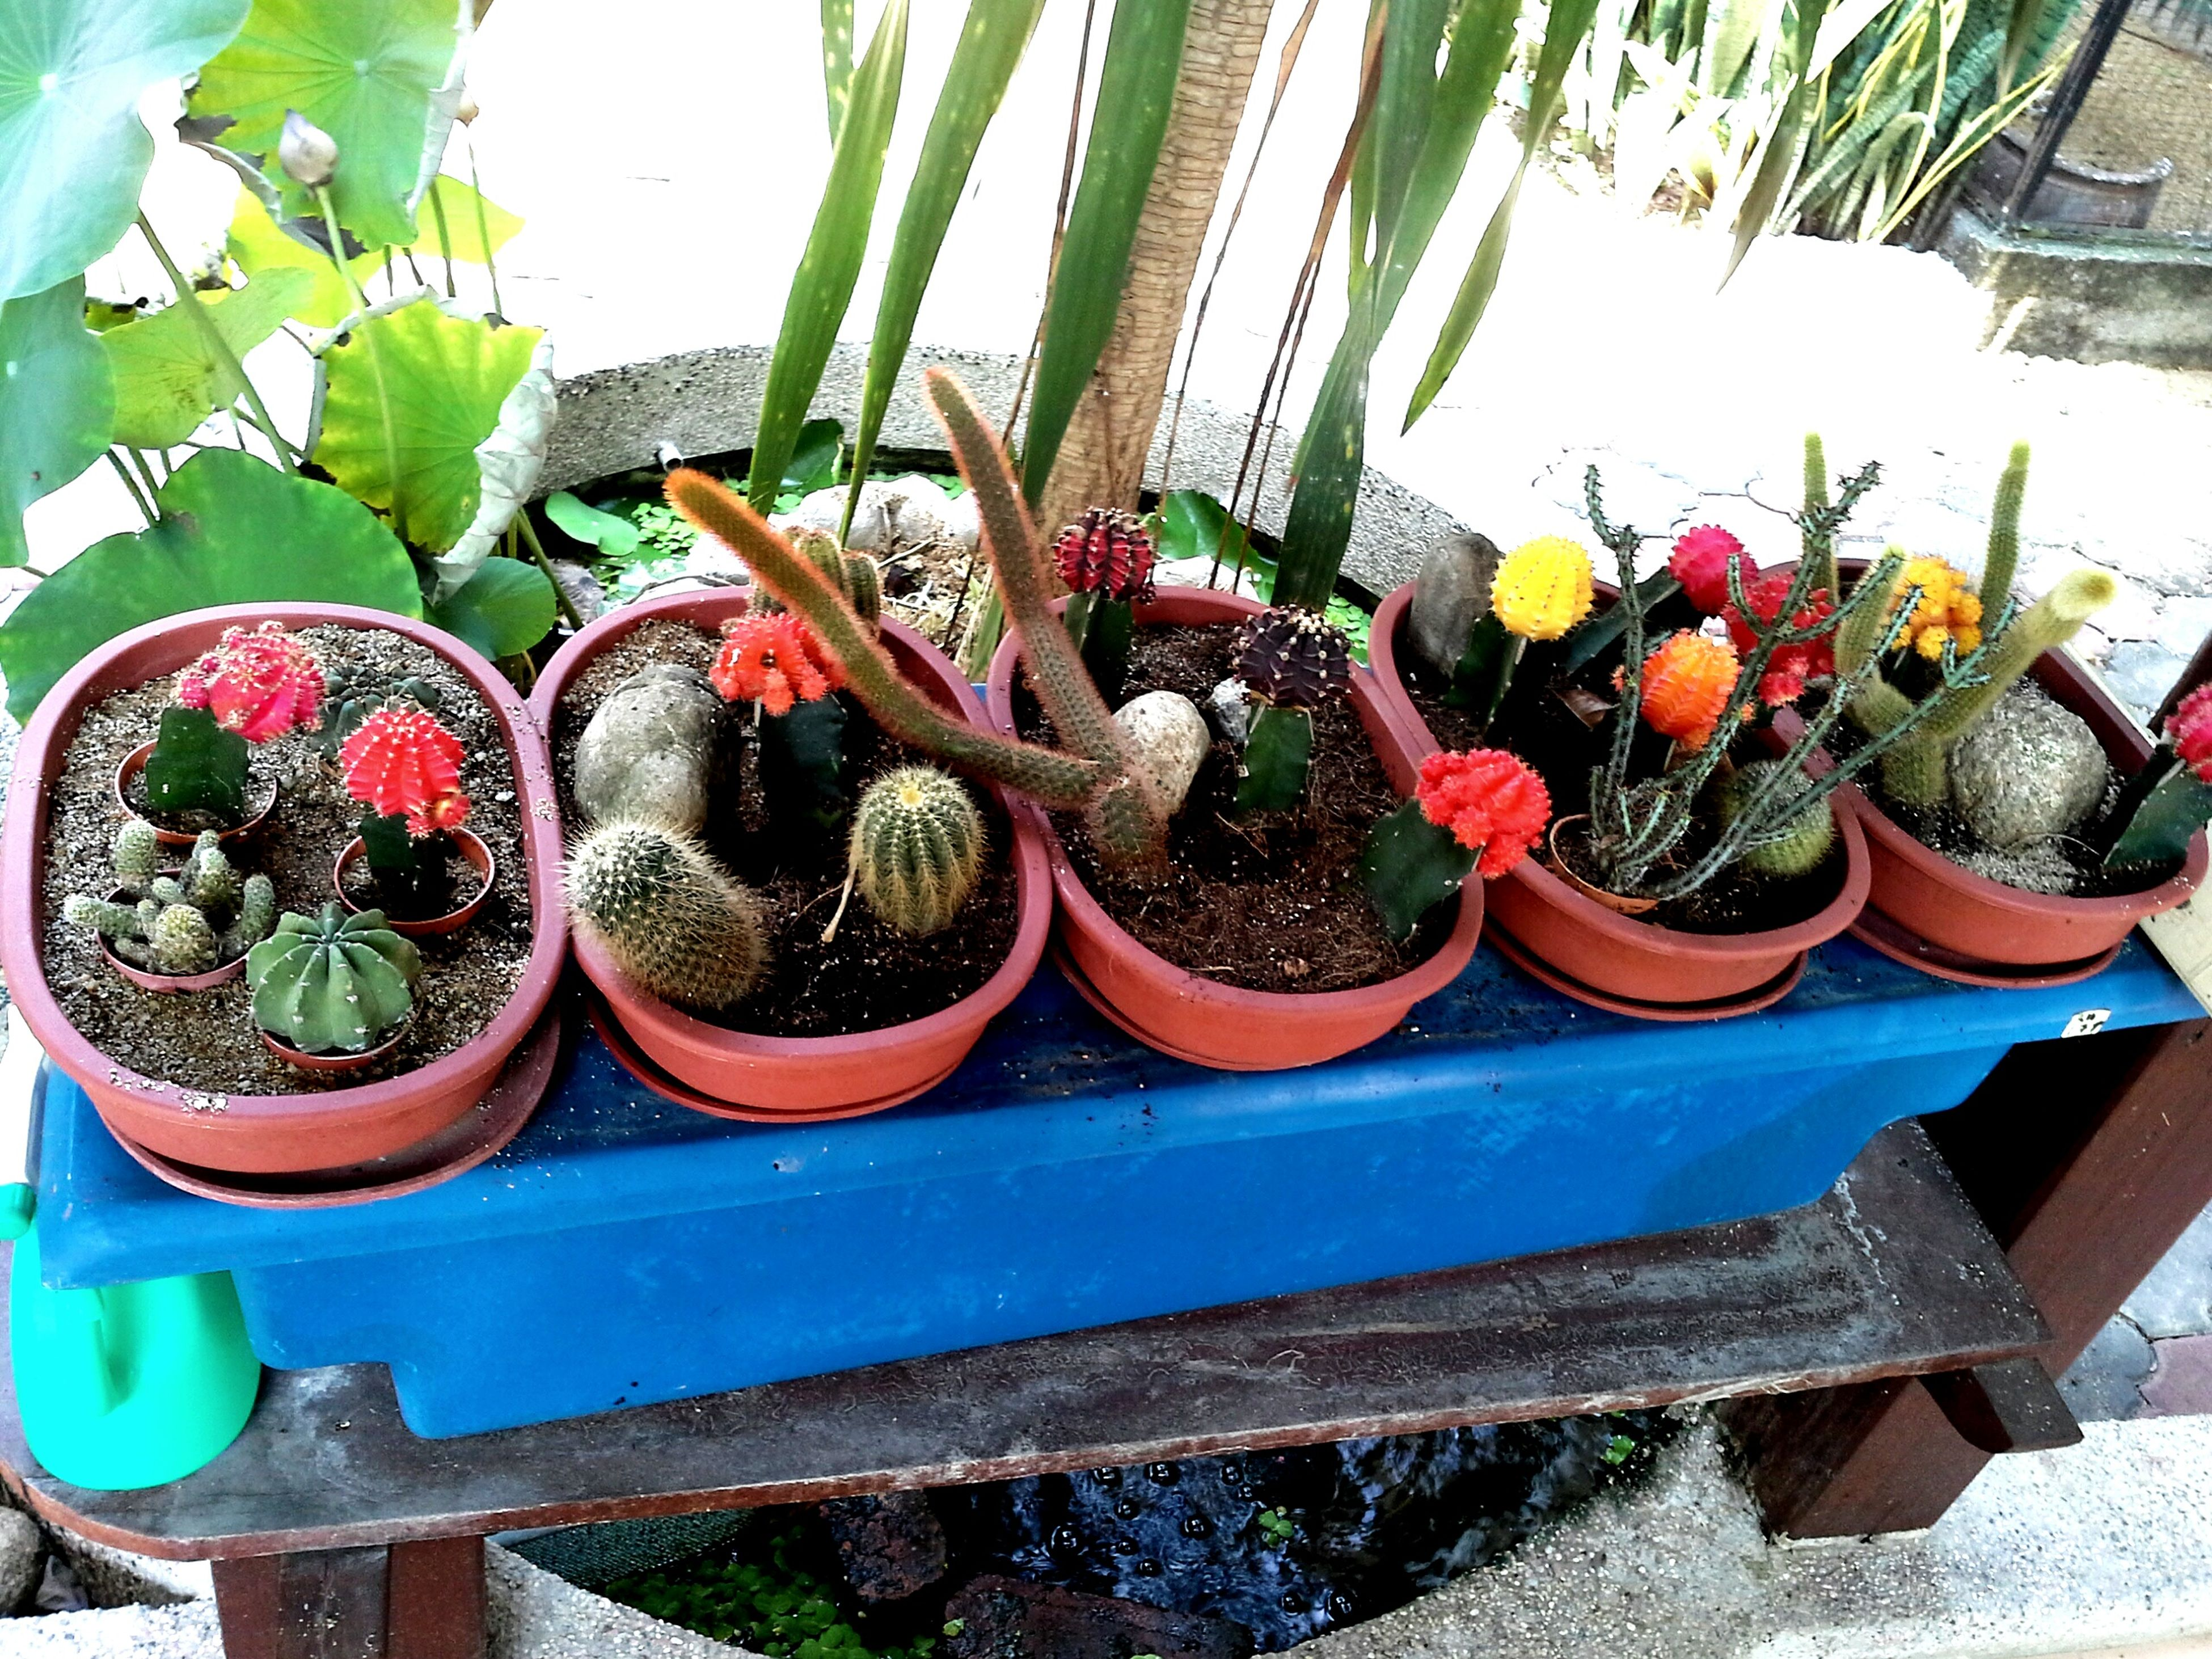 large group of objects, abundance, potted plant, variation, growth, freshness, for sale, arrangement, food and drink, plant, food, fruit, healthy eating, choice, basket, retail, cactus, day, market, market stall